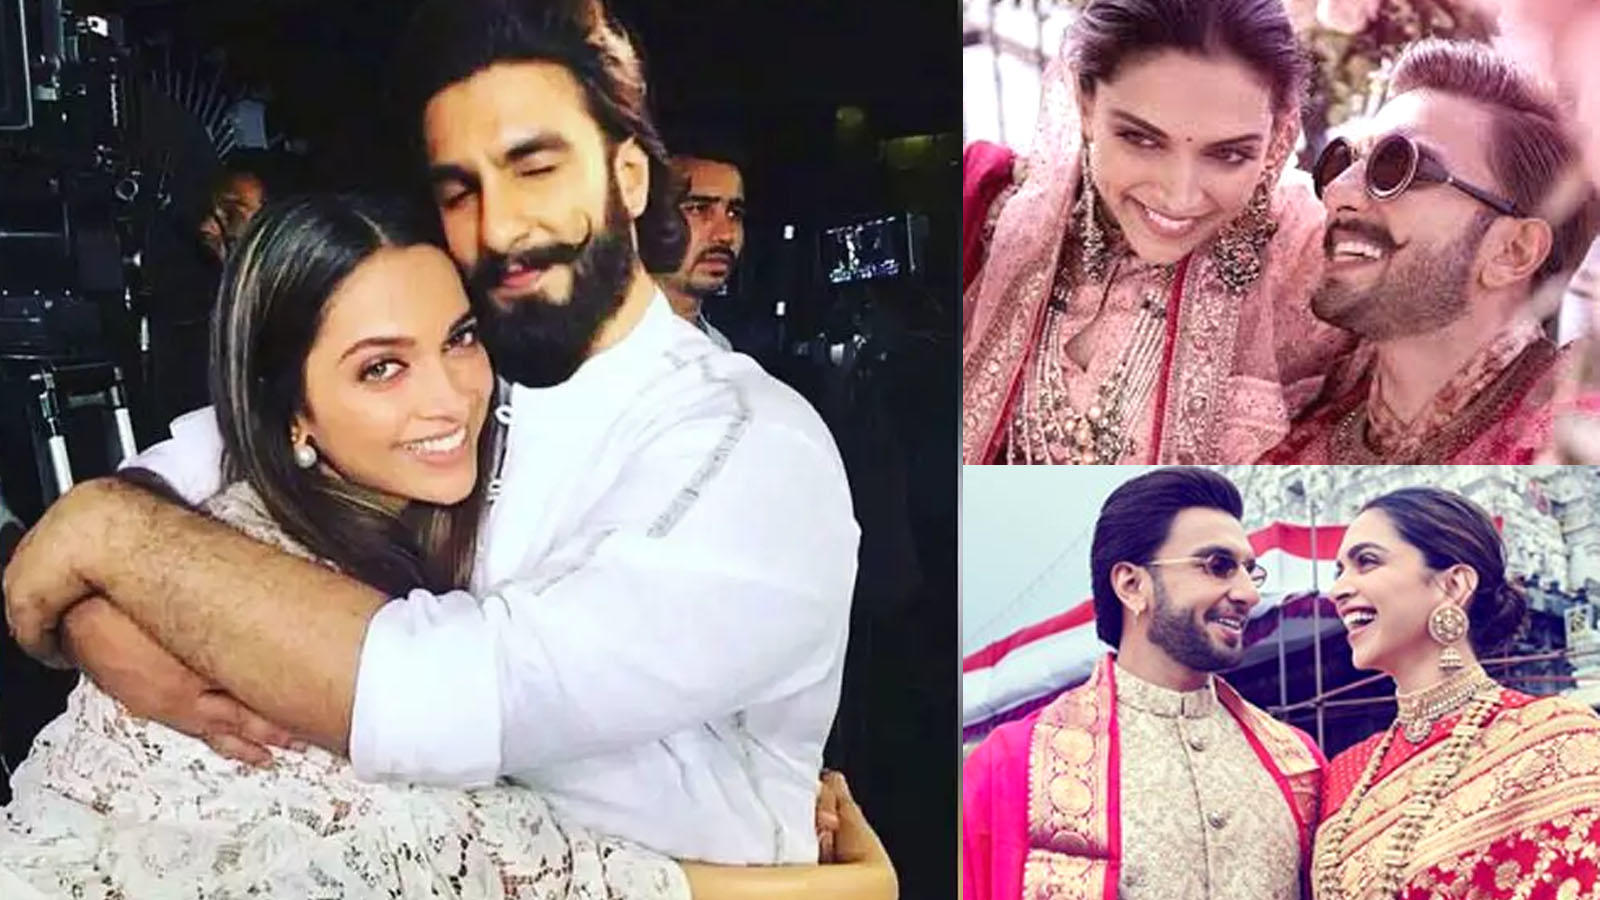 Deepika Padukone and Ranveer Singh's first wedding anniversary: Take a look at the couple's beautiful love story